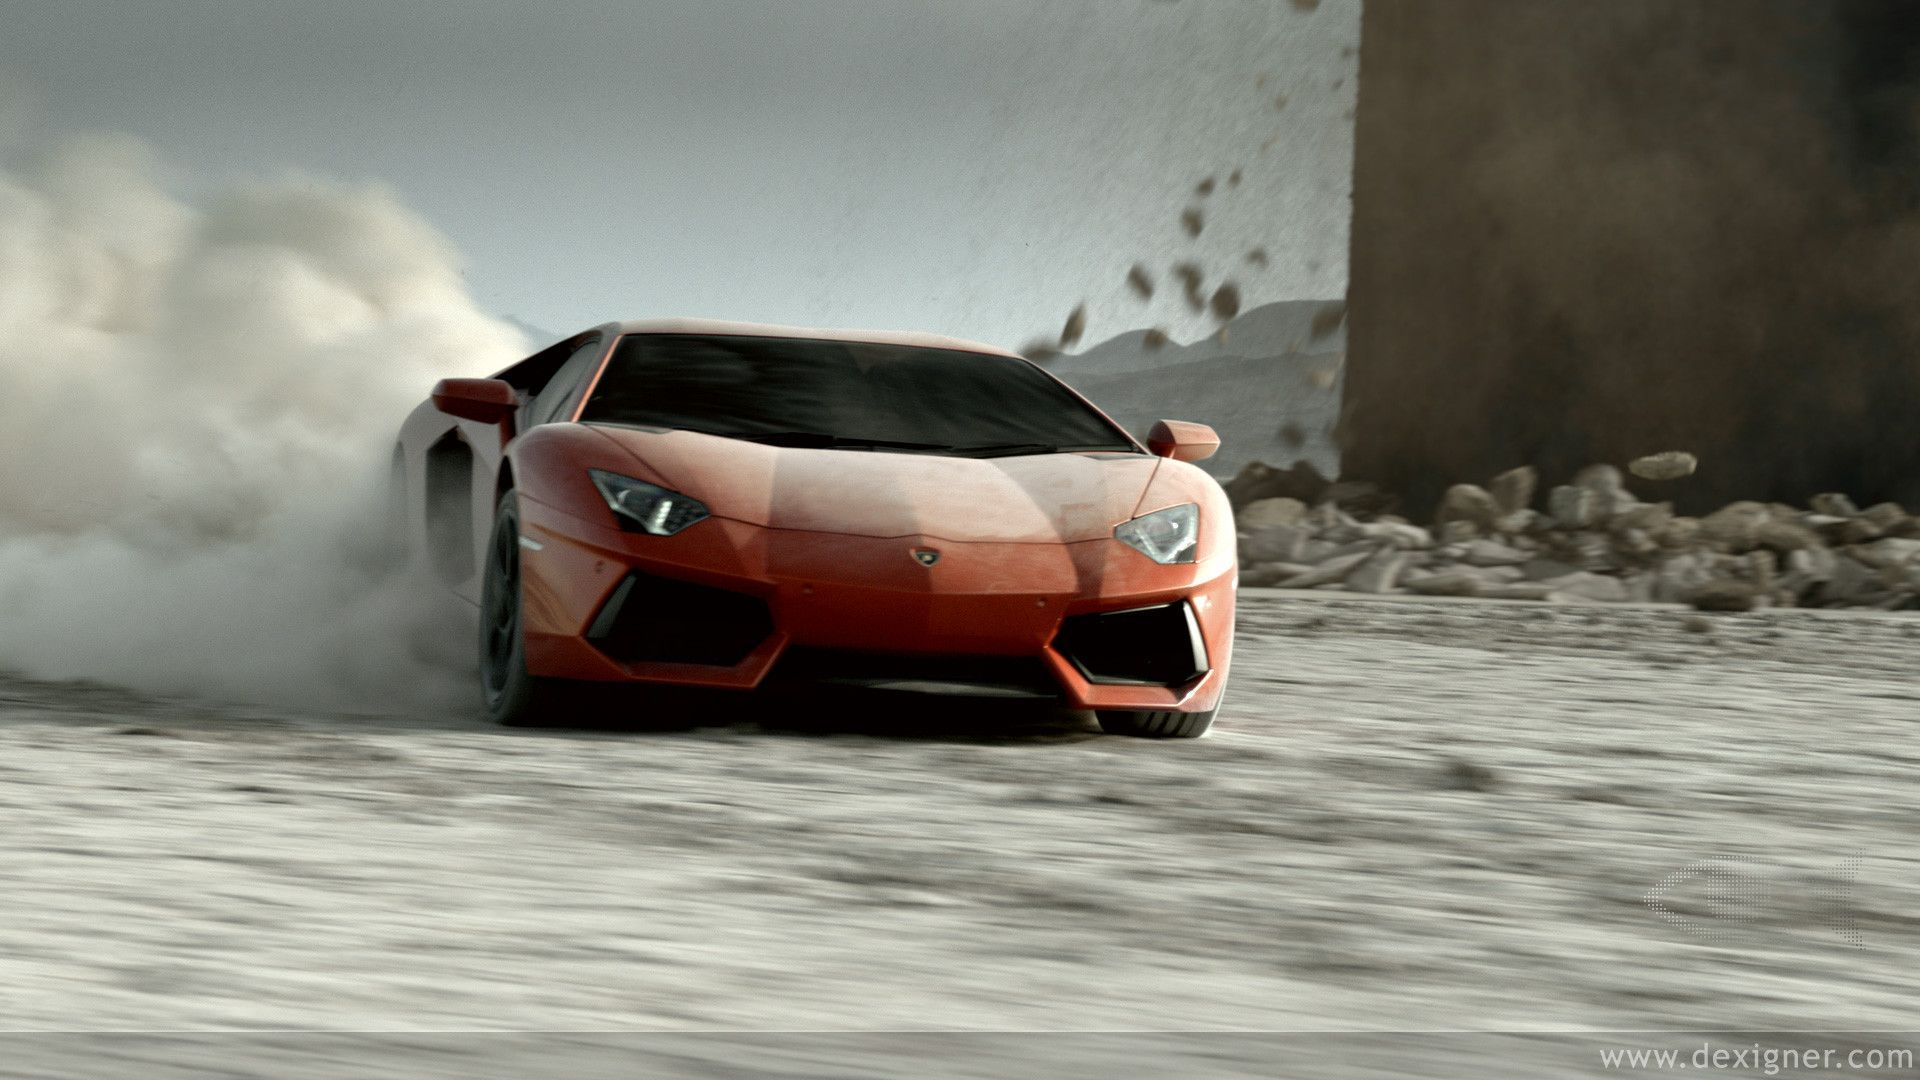 Lamborghini car HD wallpaper for download